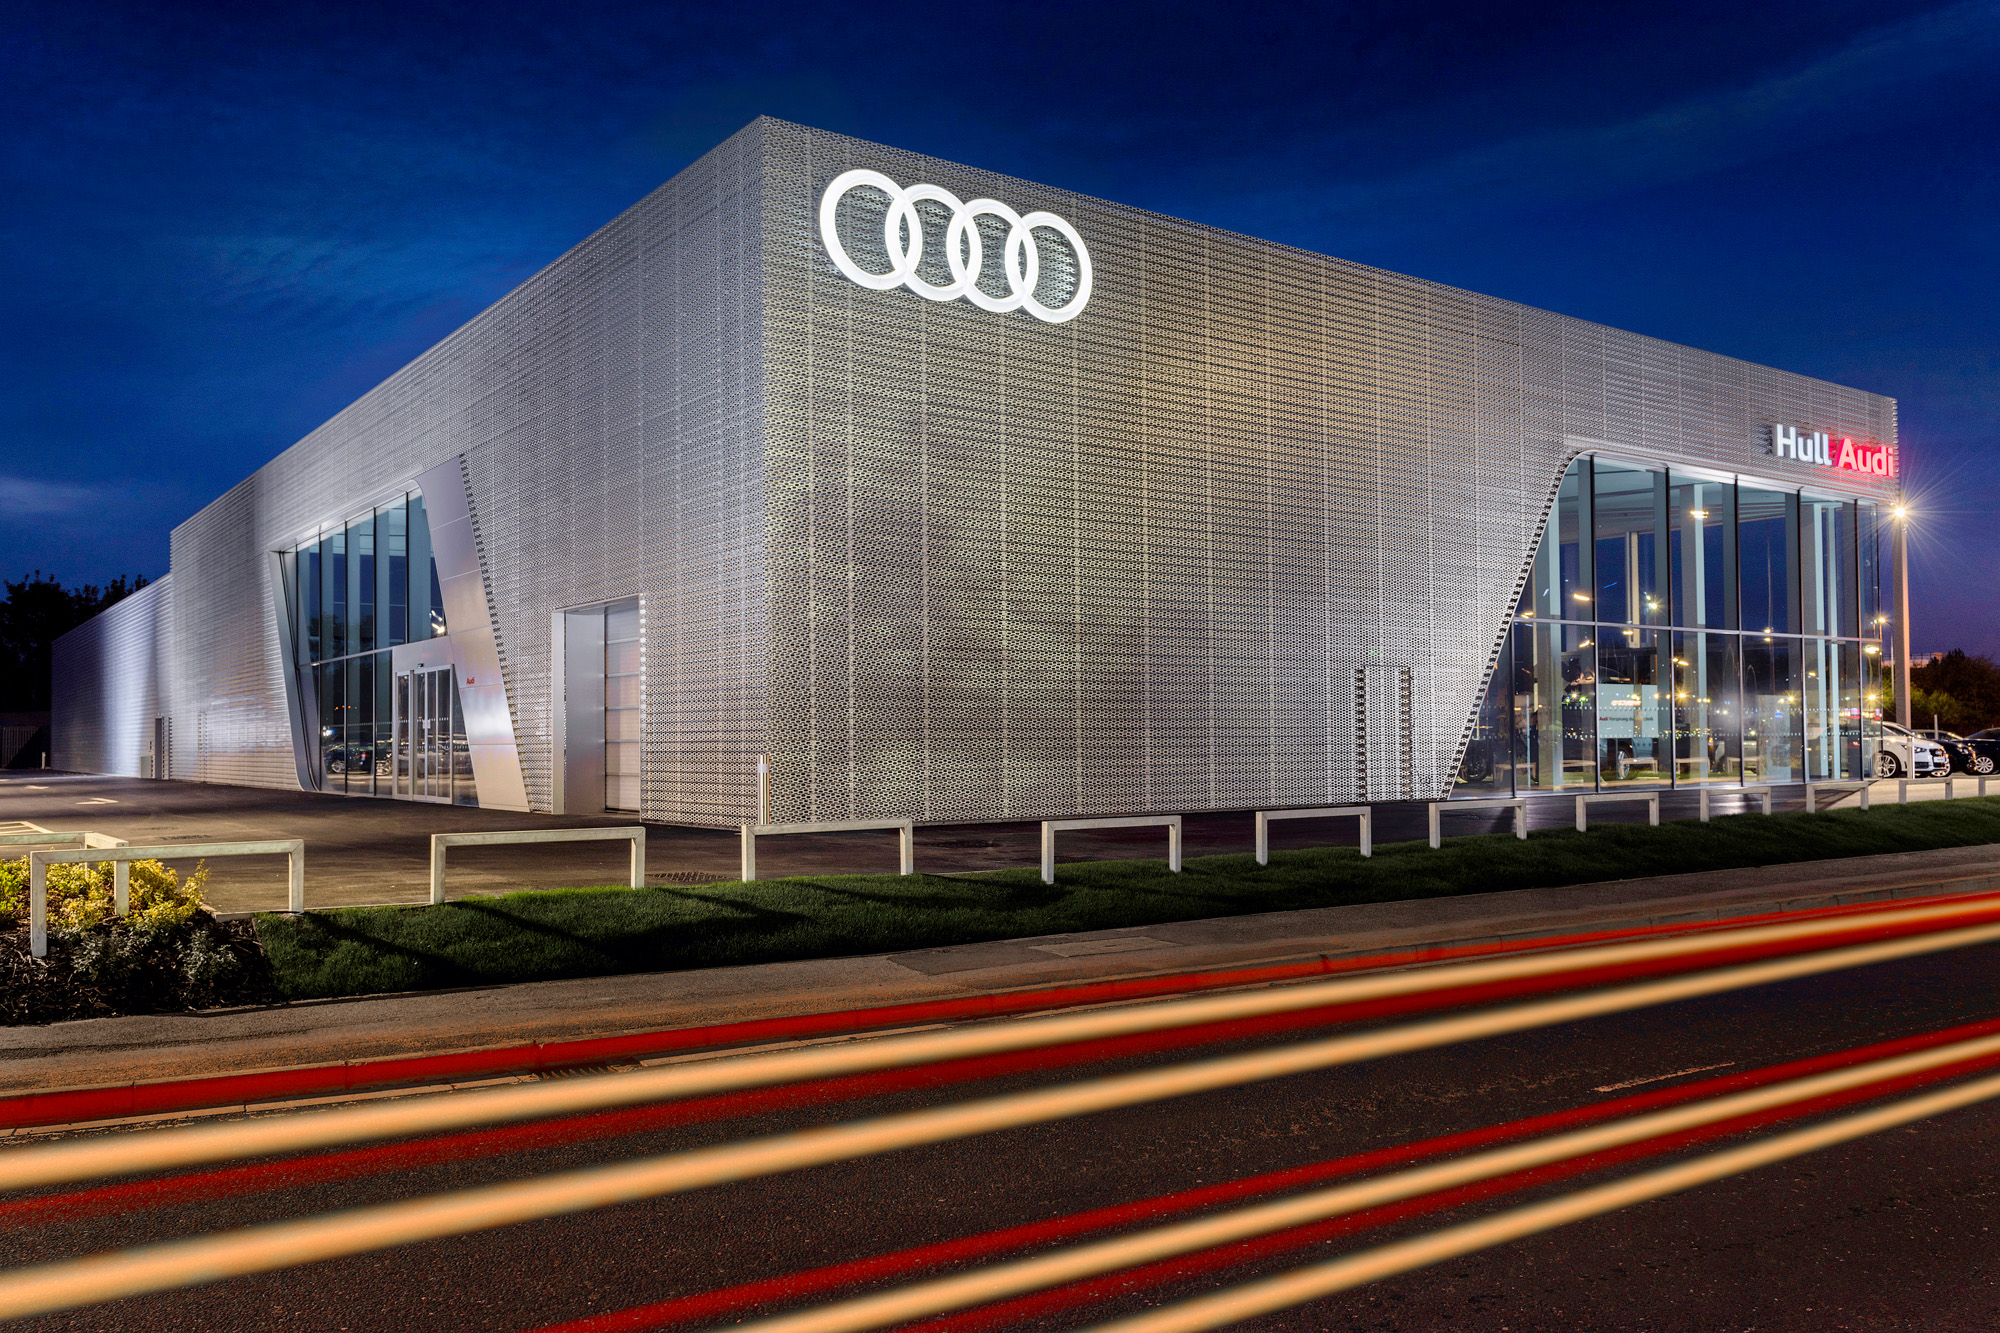 Audi-Hull-PDR-Construction-UK